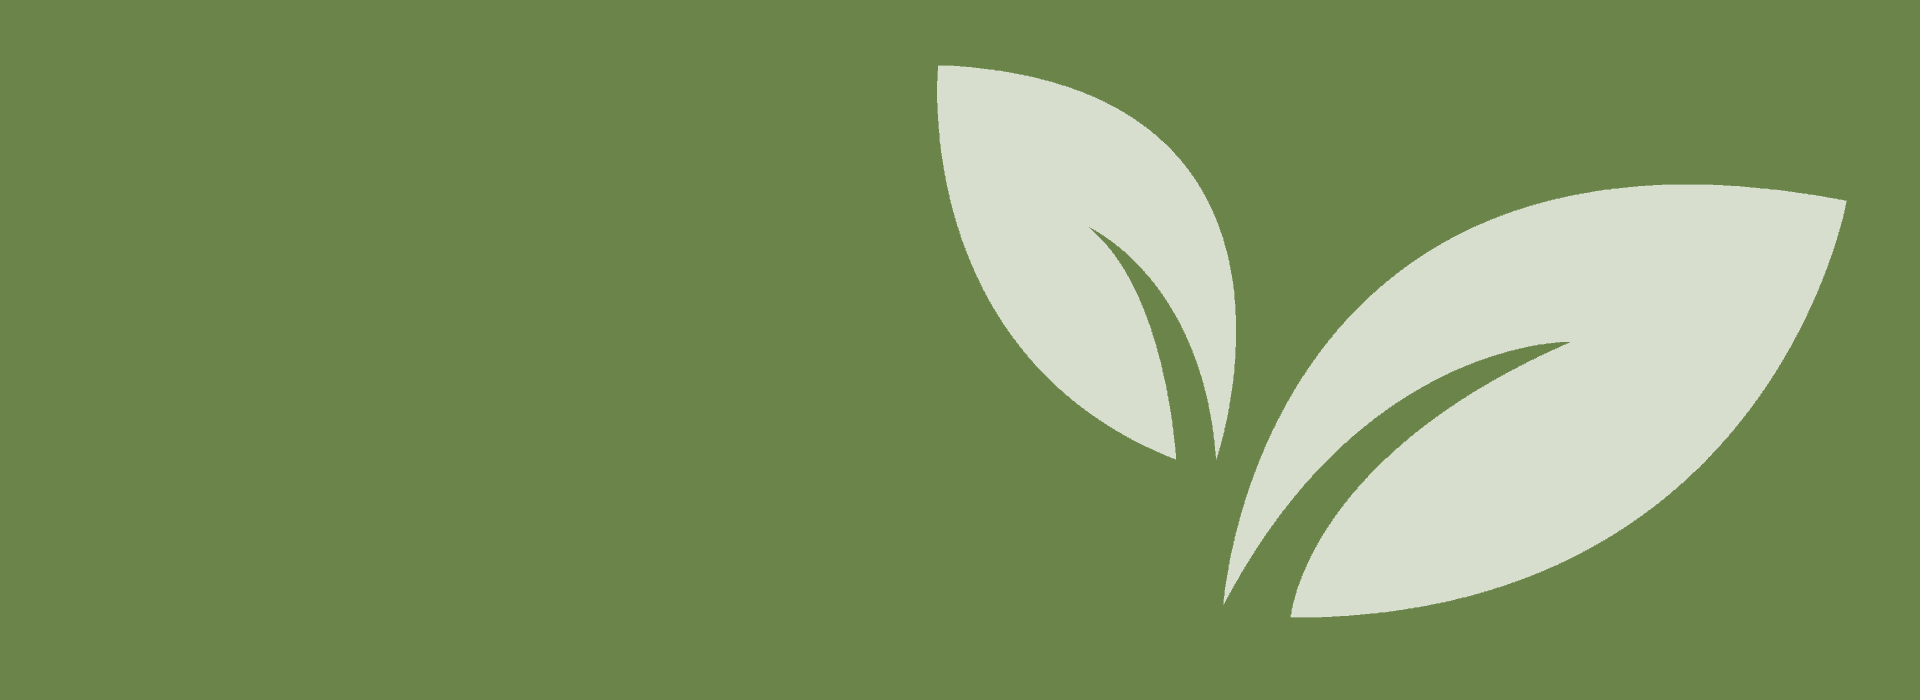 Commercial and Residential Lawn Care Ohio - Greenwisegroundscare